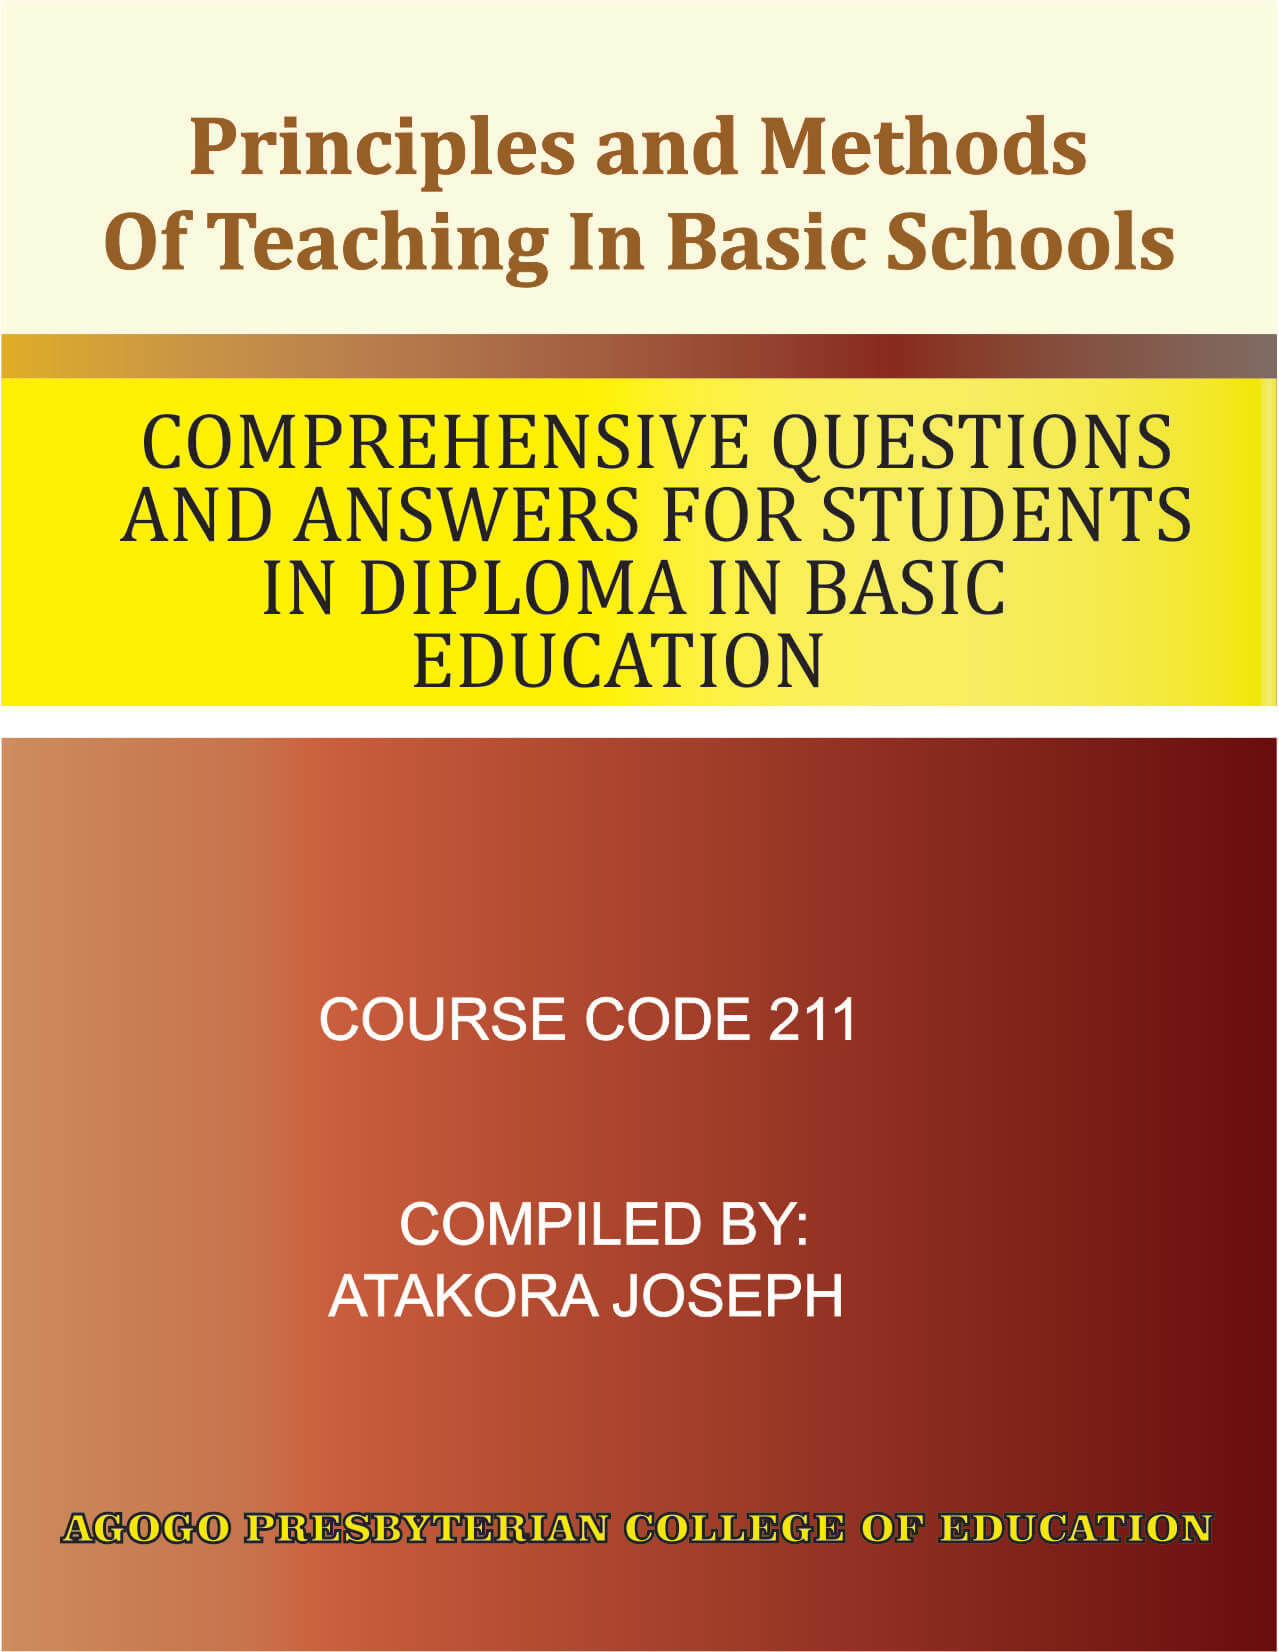 Principles and Methods of Teaching in Basic Schools